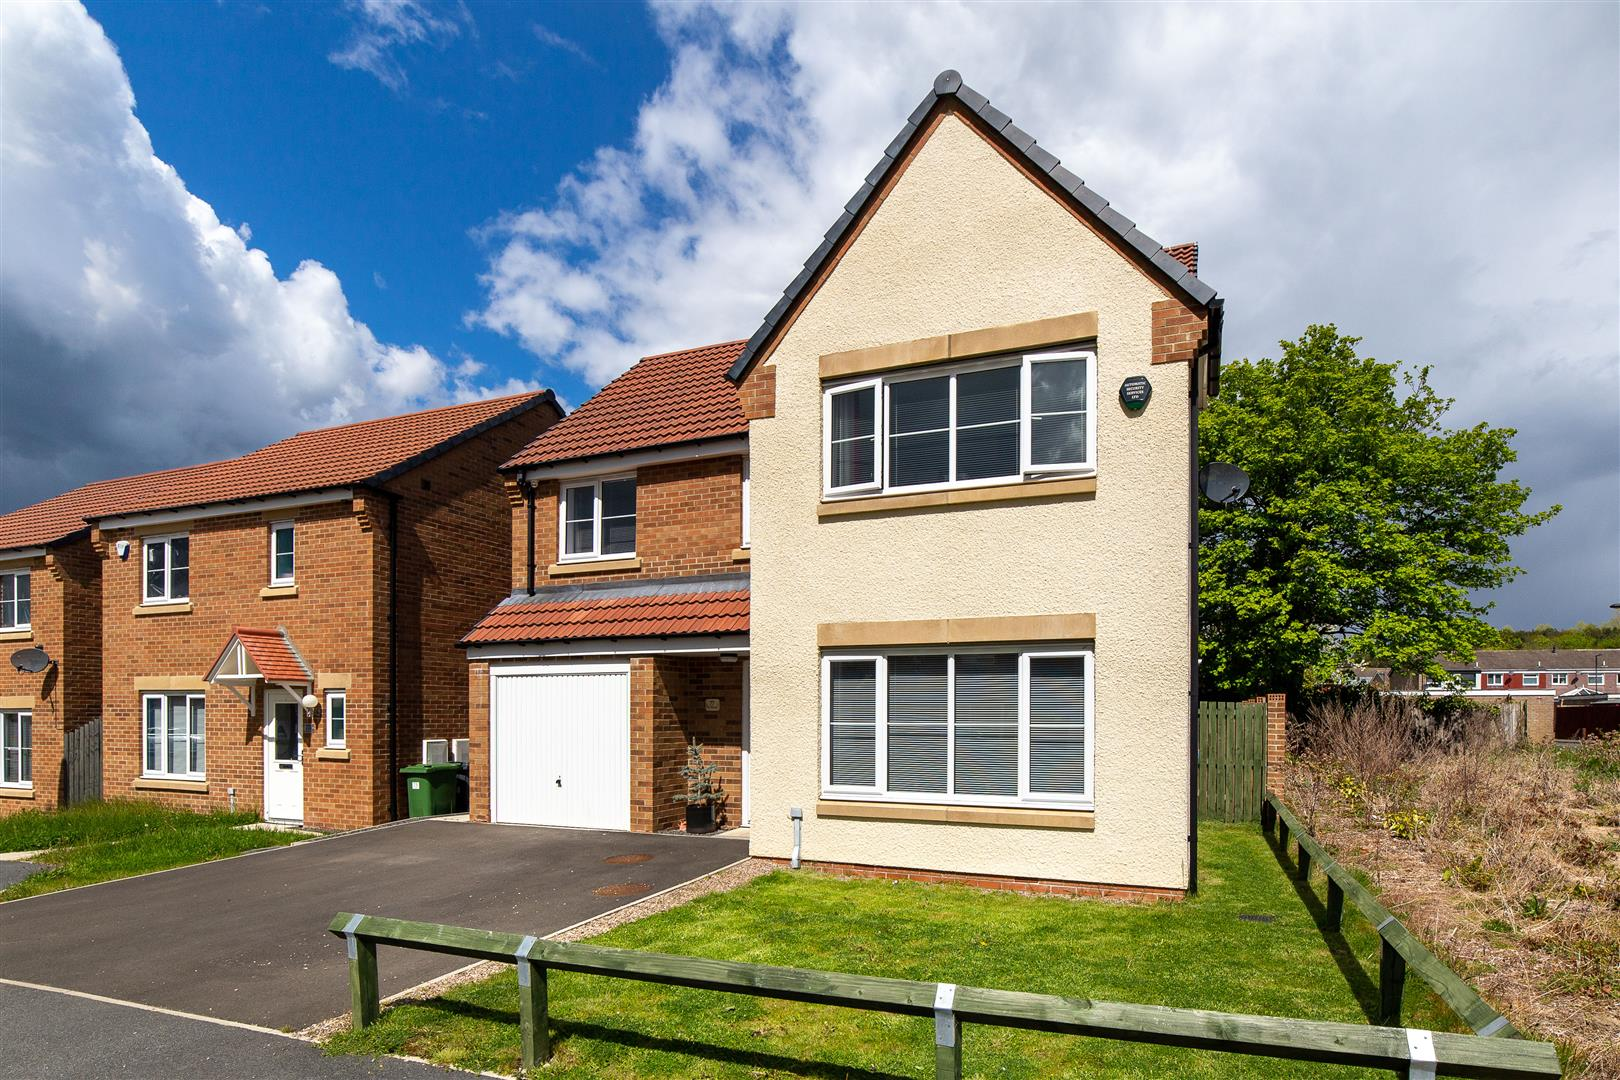 4 bed detached house for sale in The Risings, Wallsend, NE28